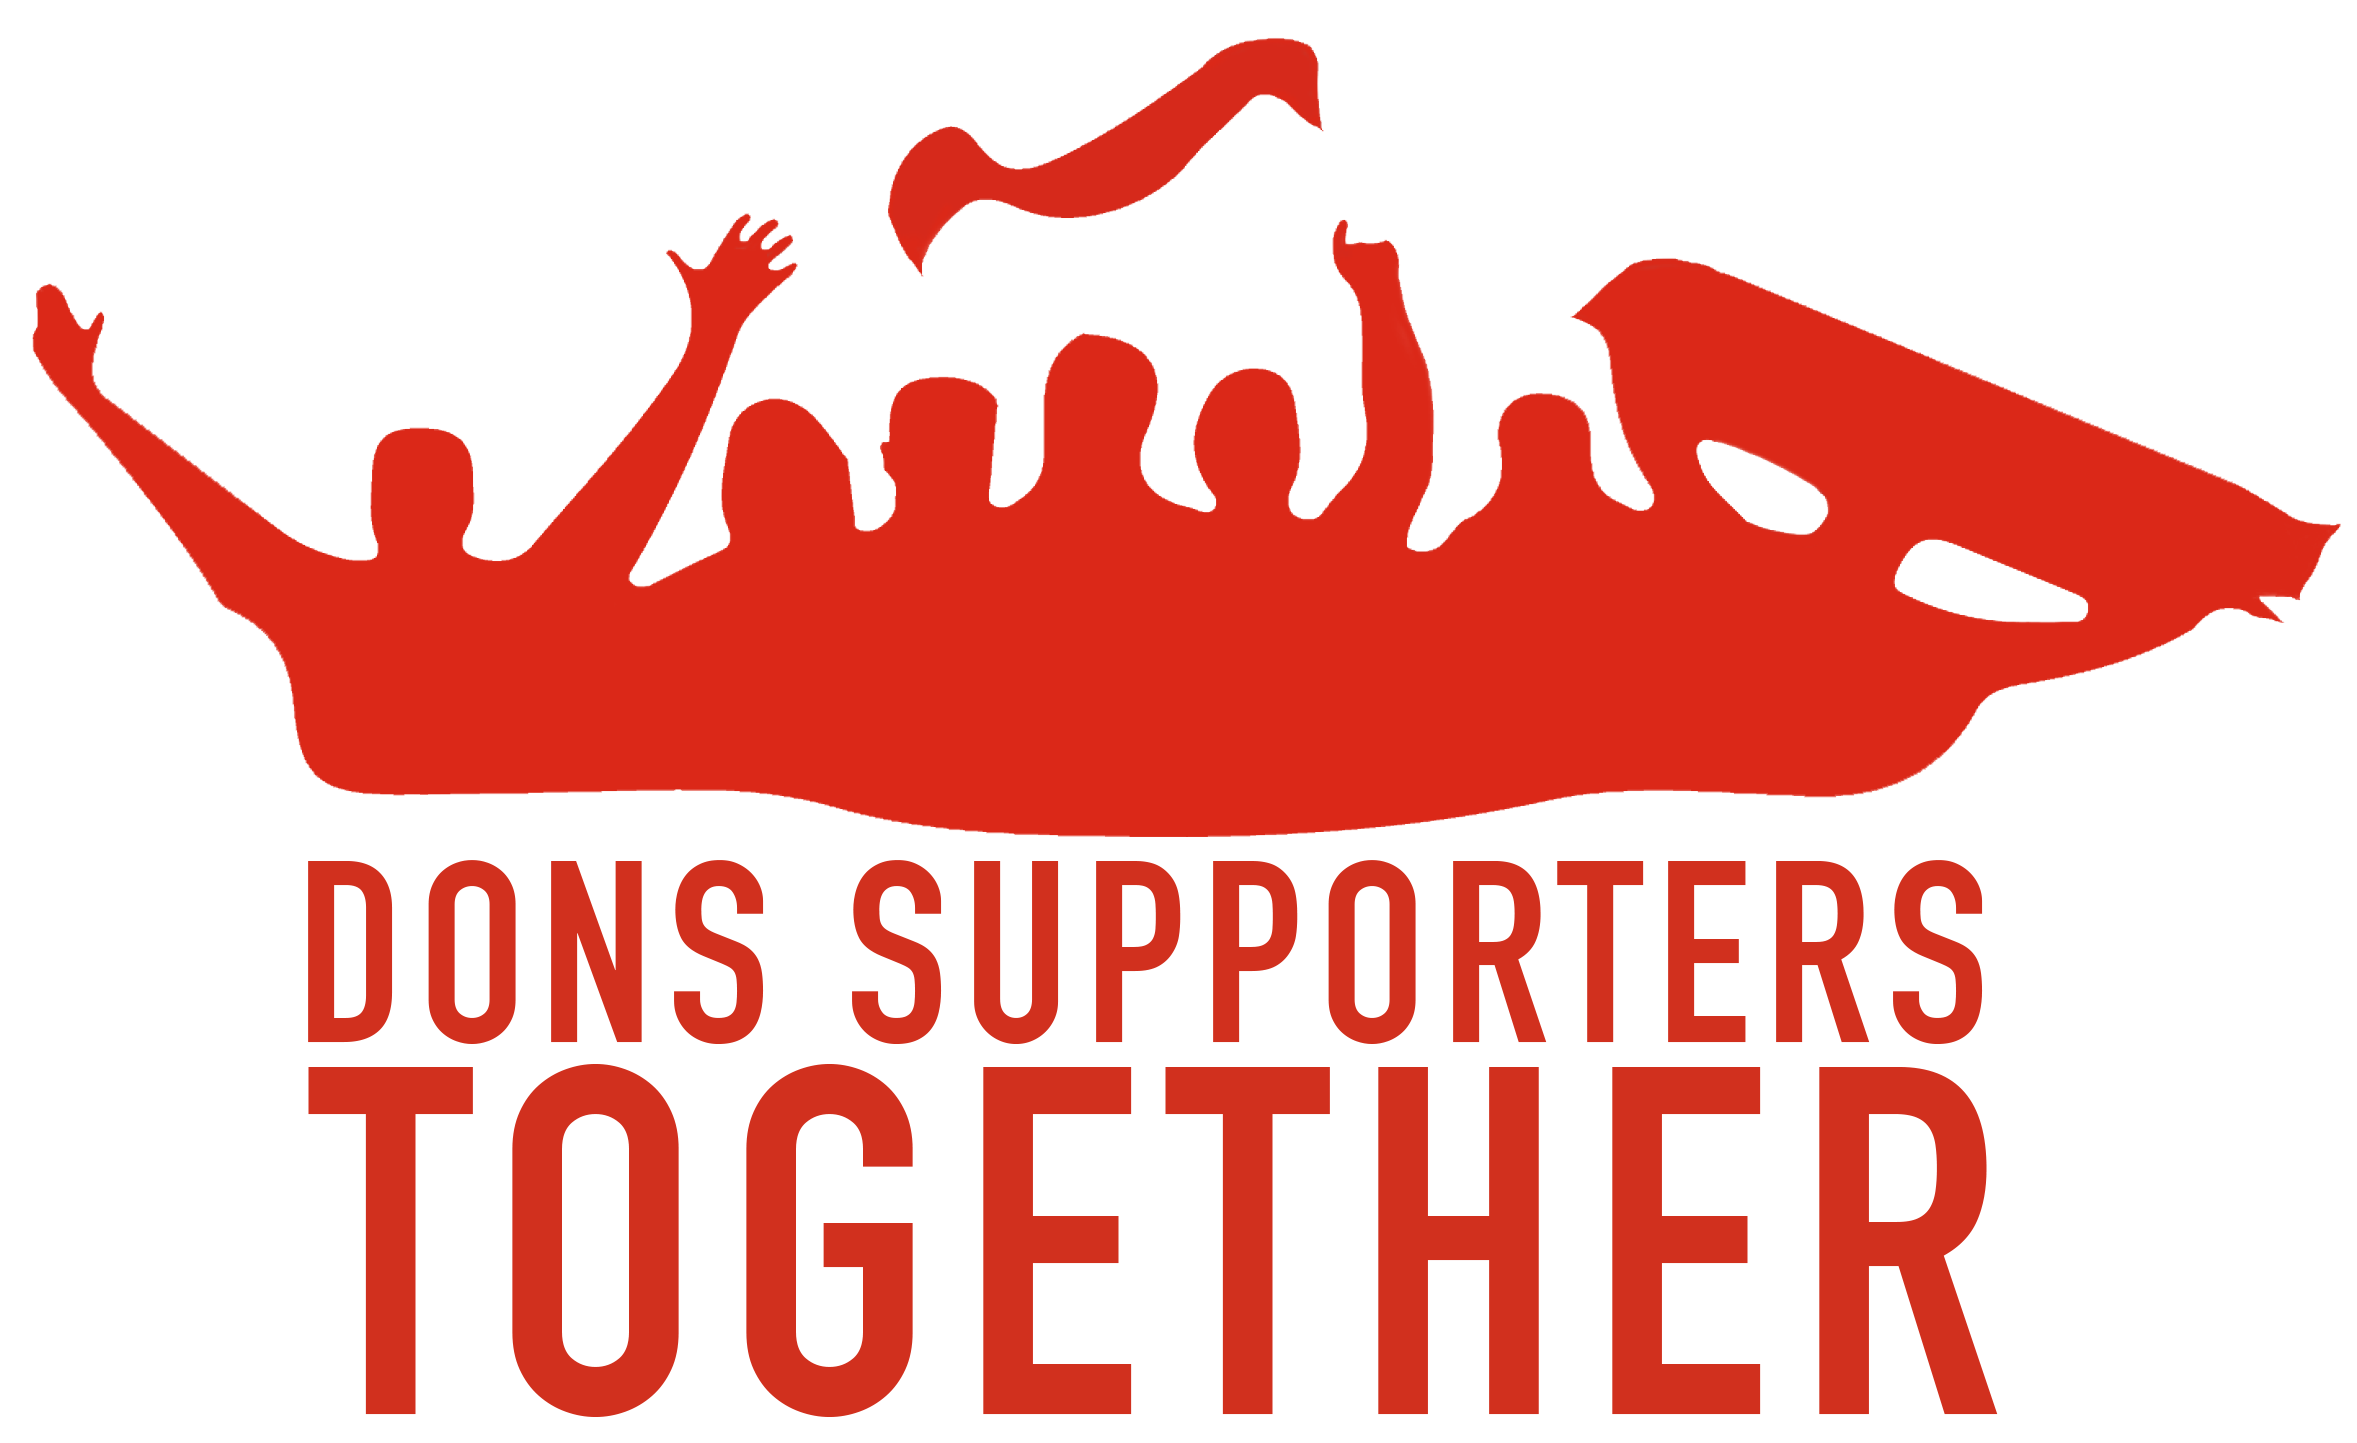 Getting to Know Your Supporters Trust – Dons Supporters Together